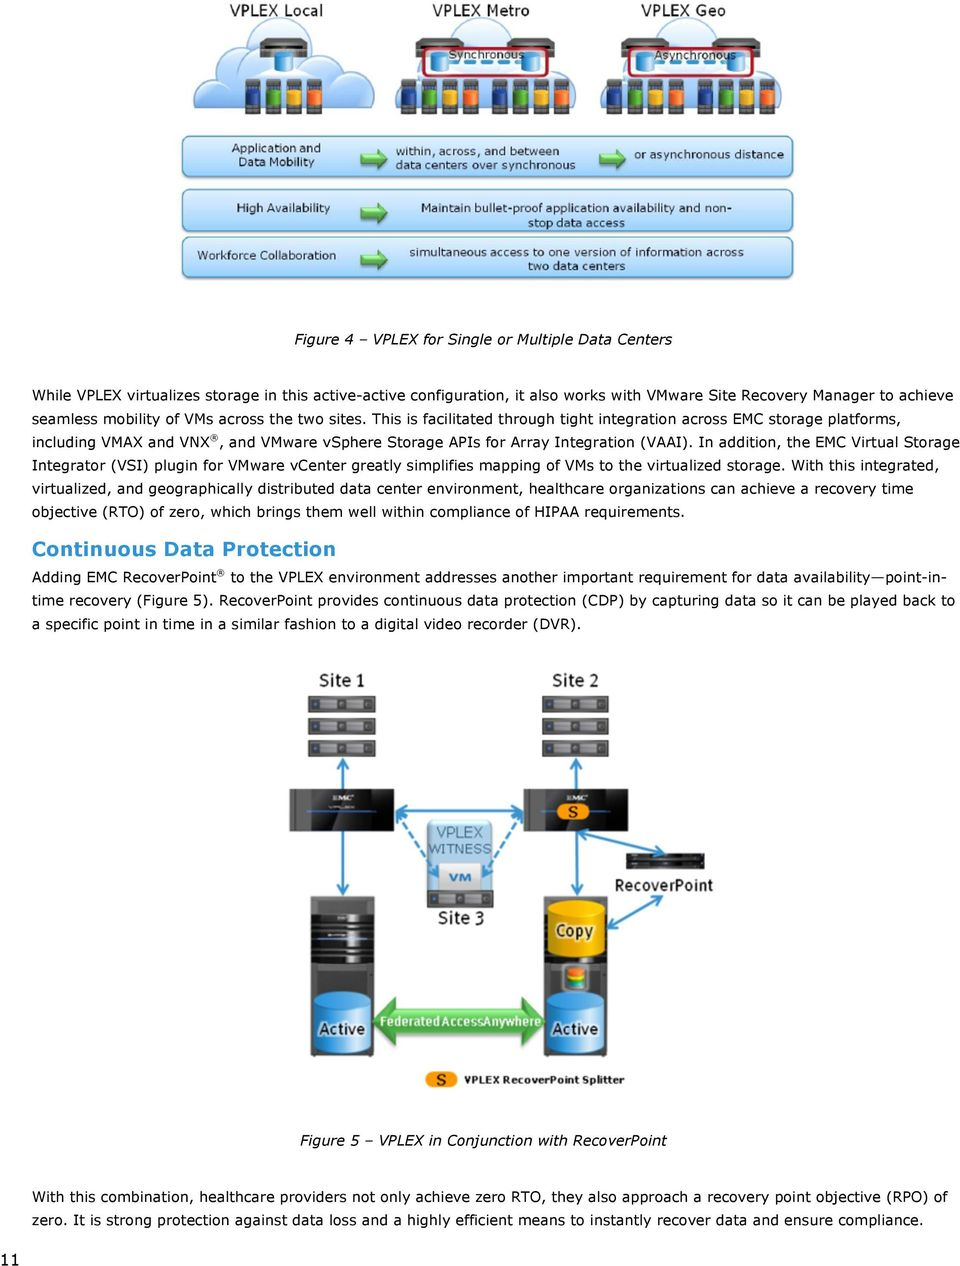 In addition, the EMC Virtual Storage Integrator (VSI) plugin for VMware vcenter greatly simplifies mapping of VMs to the virtualized storage.